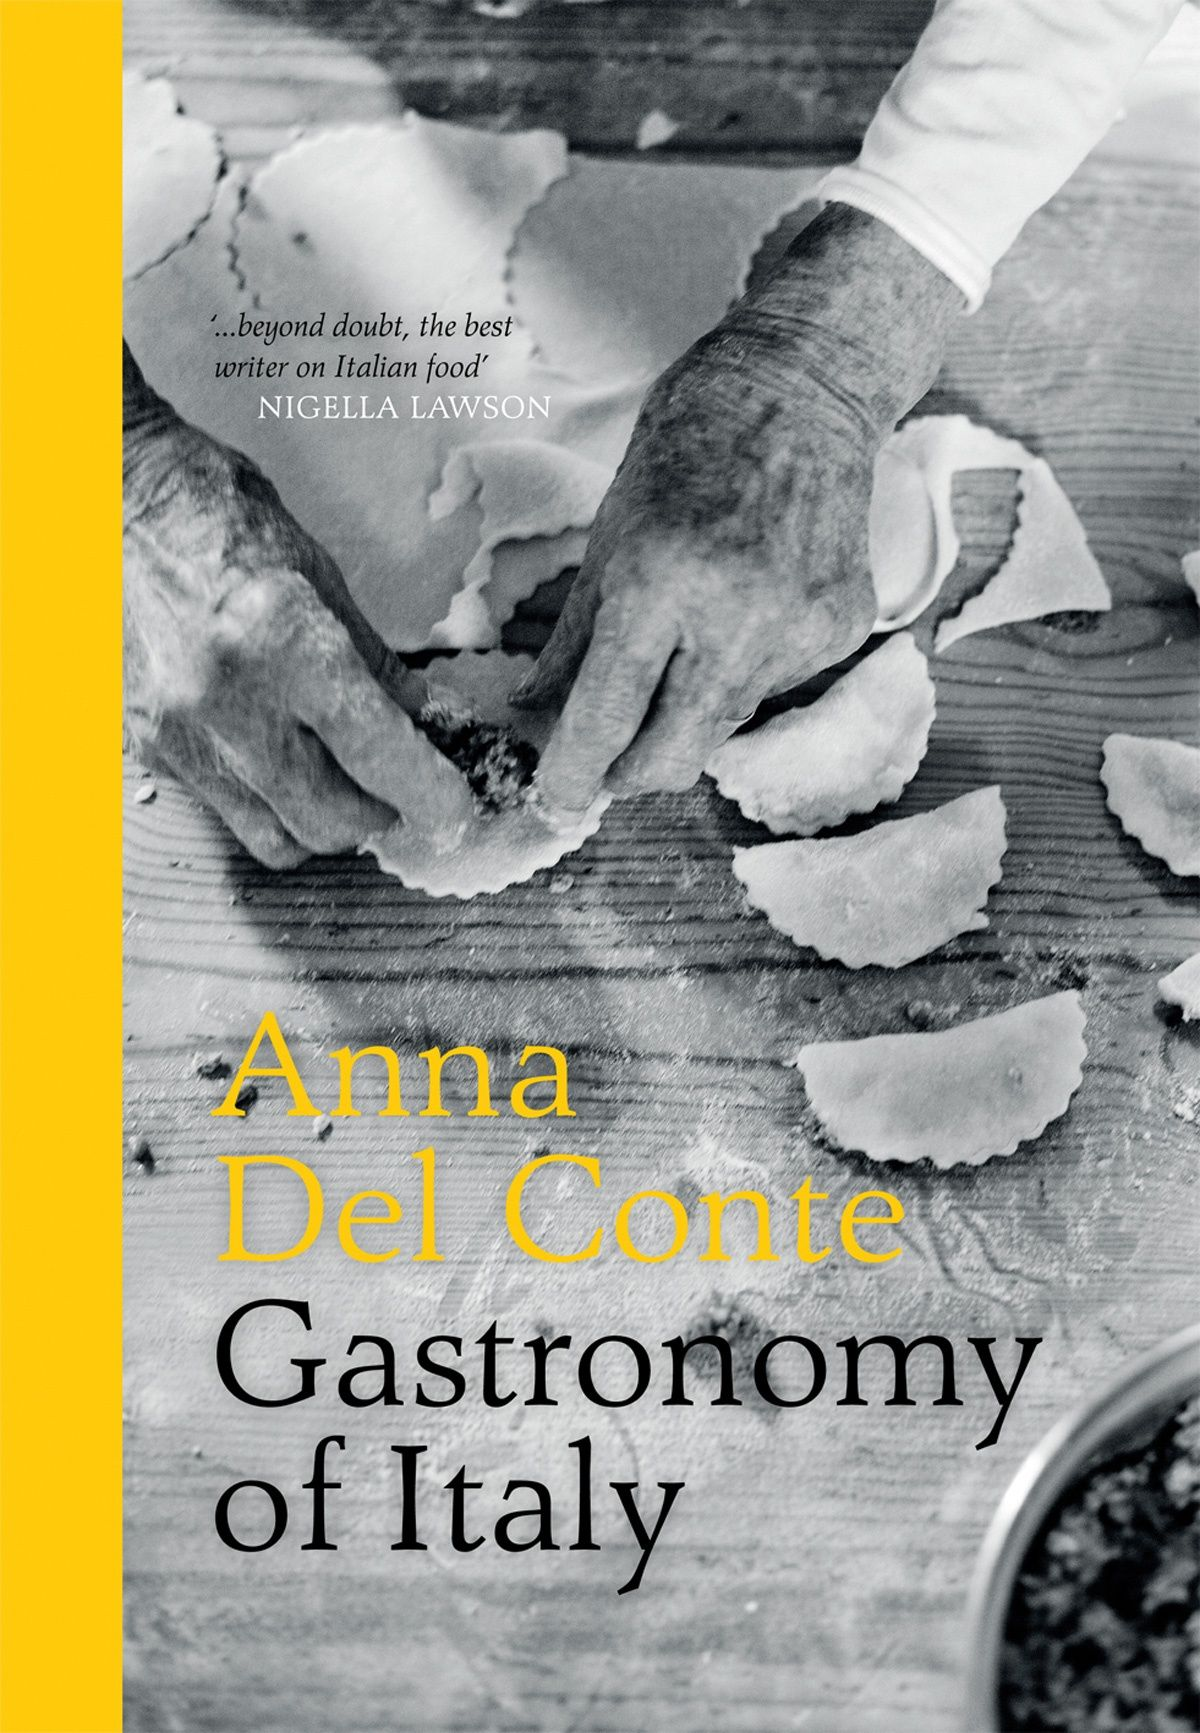 Book cover of Gastronomy Of Italy by Anna del Conte. It was such an honour, and real delight, for me to take part in the recent BBC documentary about Anna del Conte, a food writer I've admired, who's inspired me and who is a mentor and friend. I've written about her in my books and on the site for years, and while I really want to urge you to read all of her books, for serious cooks and those interested in the history of food, her Gastronomy of Italy is a good place to start.